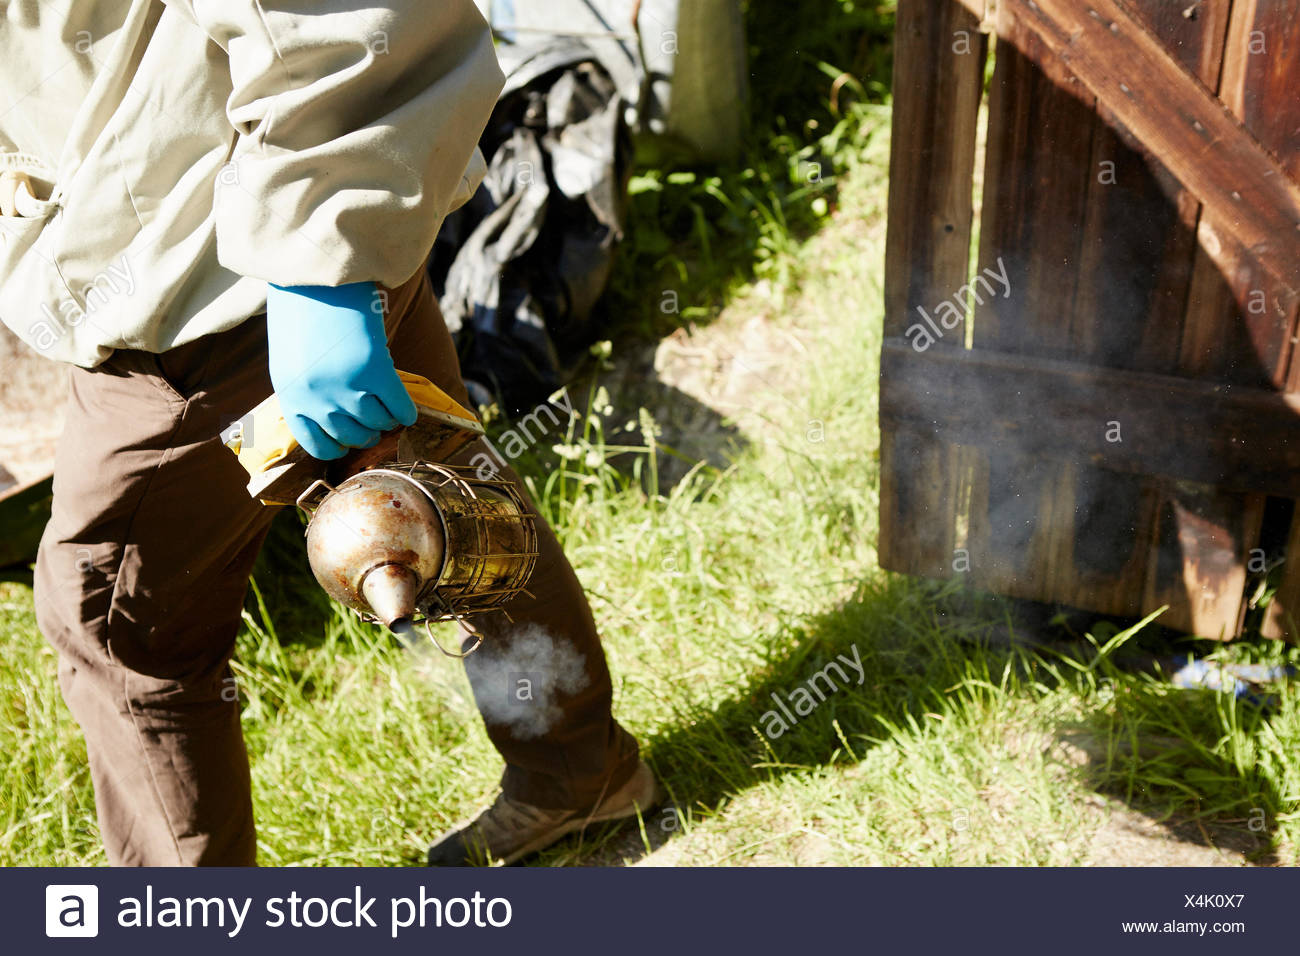 A  beekeeper in a beesuit holding a smoker on an allotment. - Stock Image